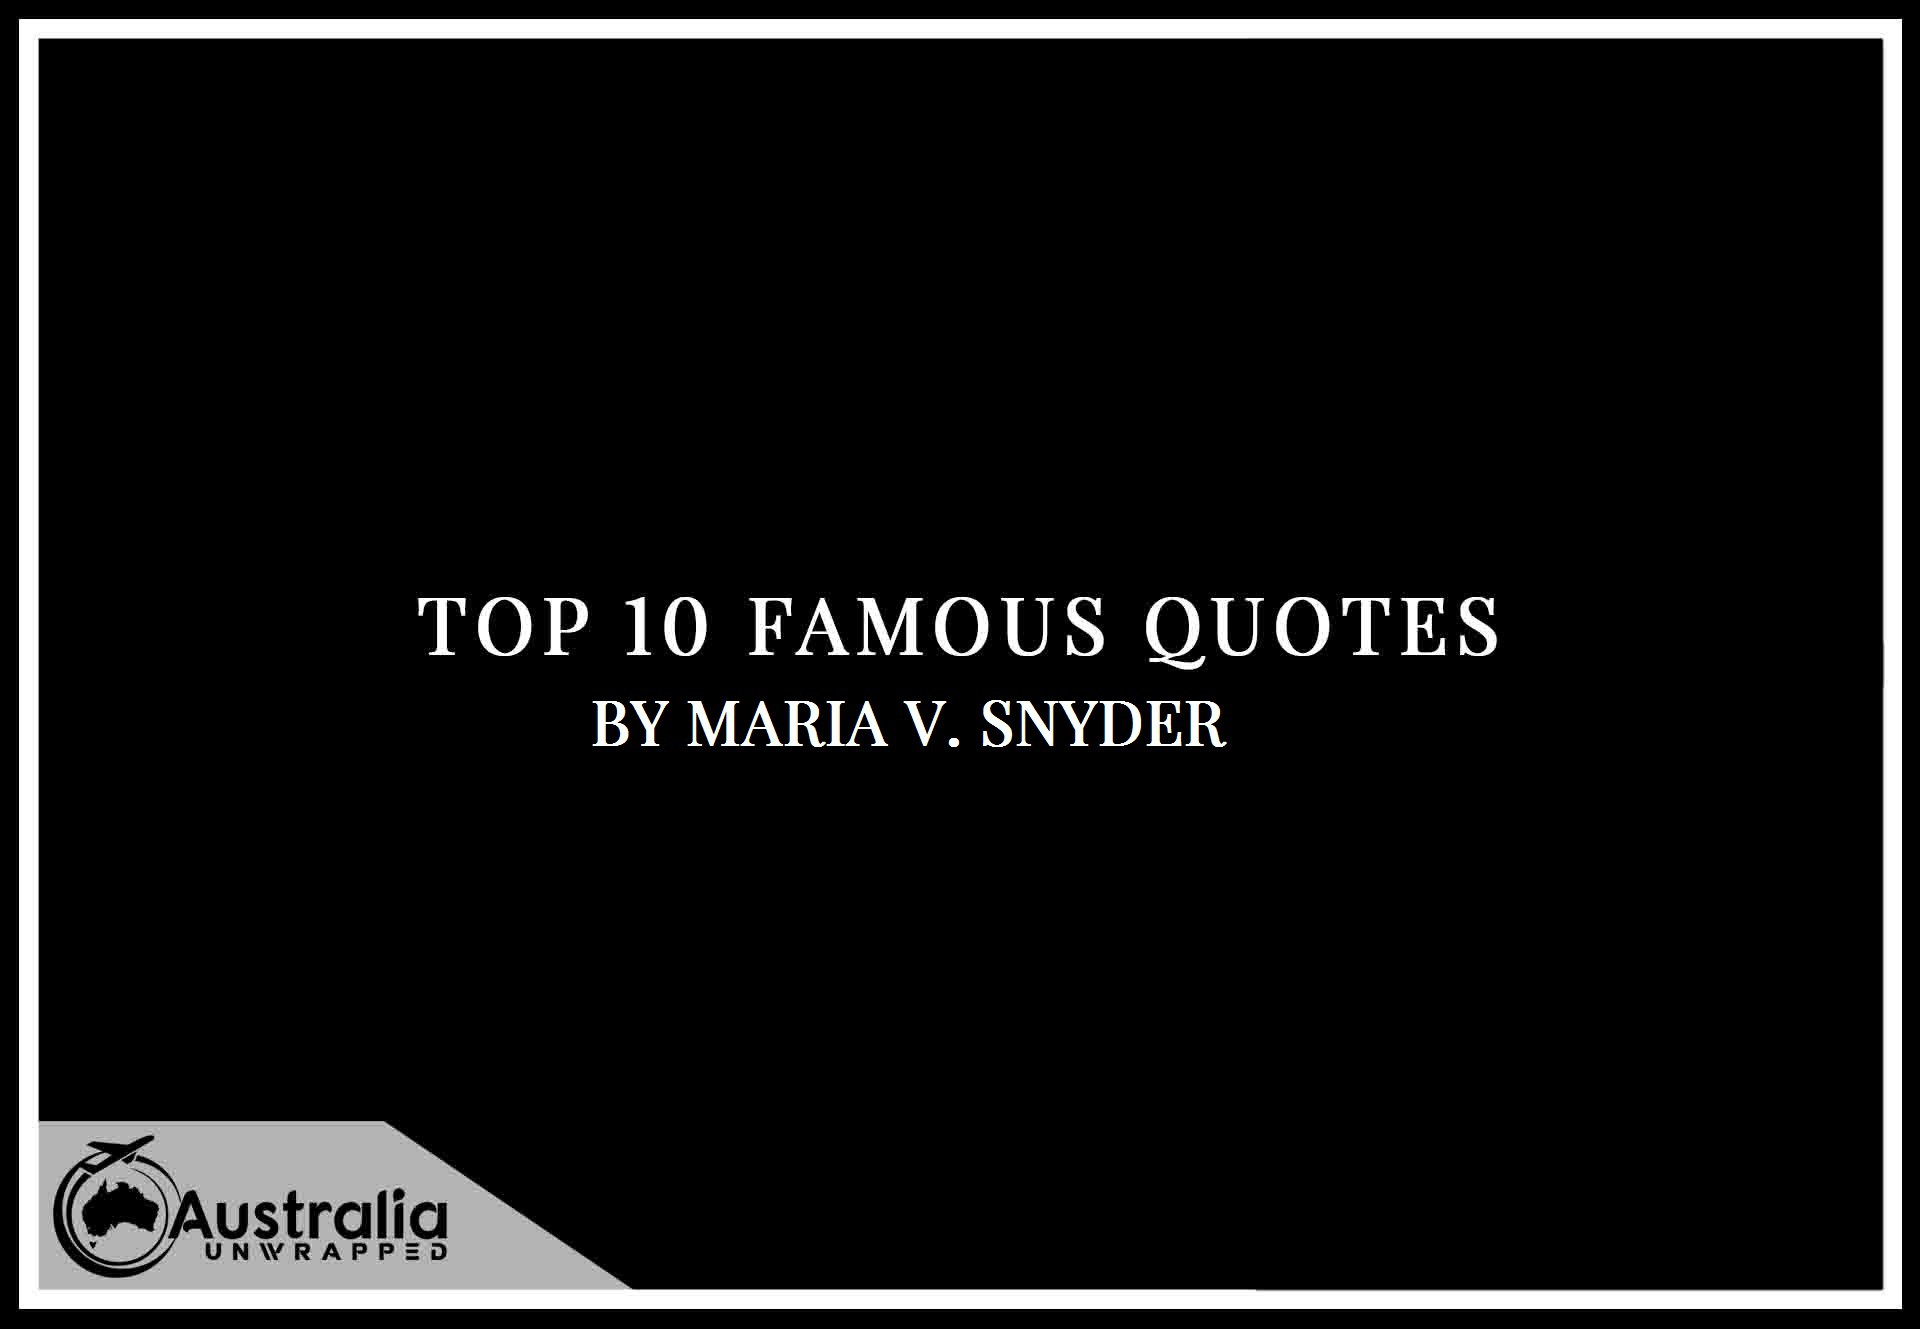 Maria V. Snyder's Top 10 Popular and Famous Quotes